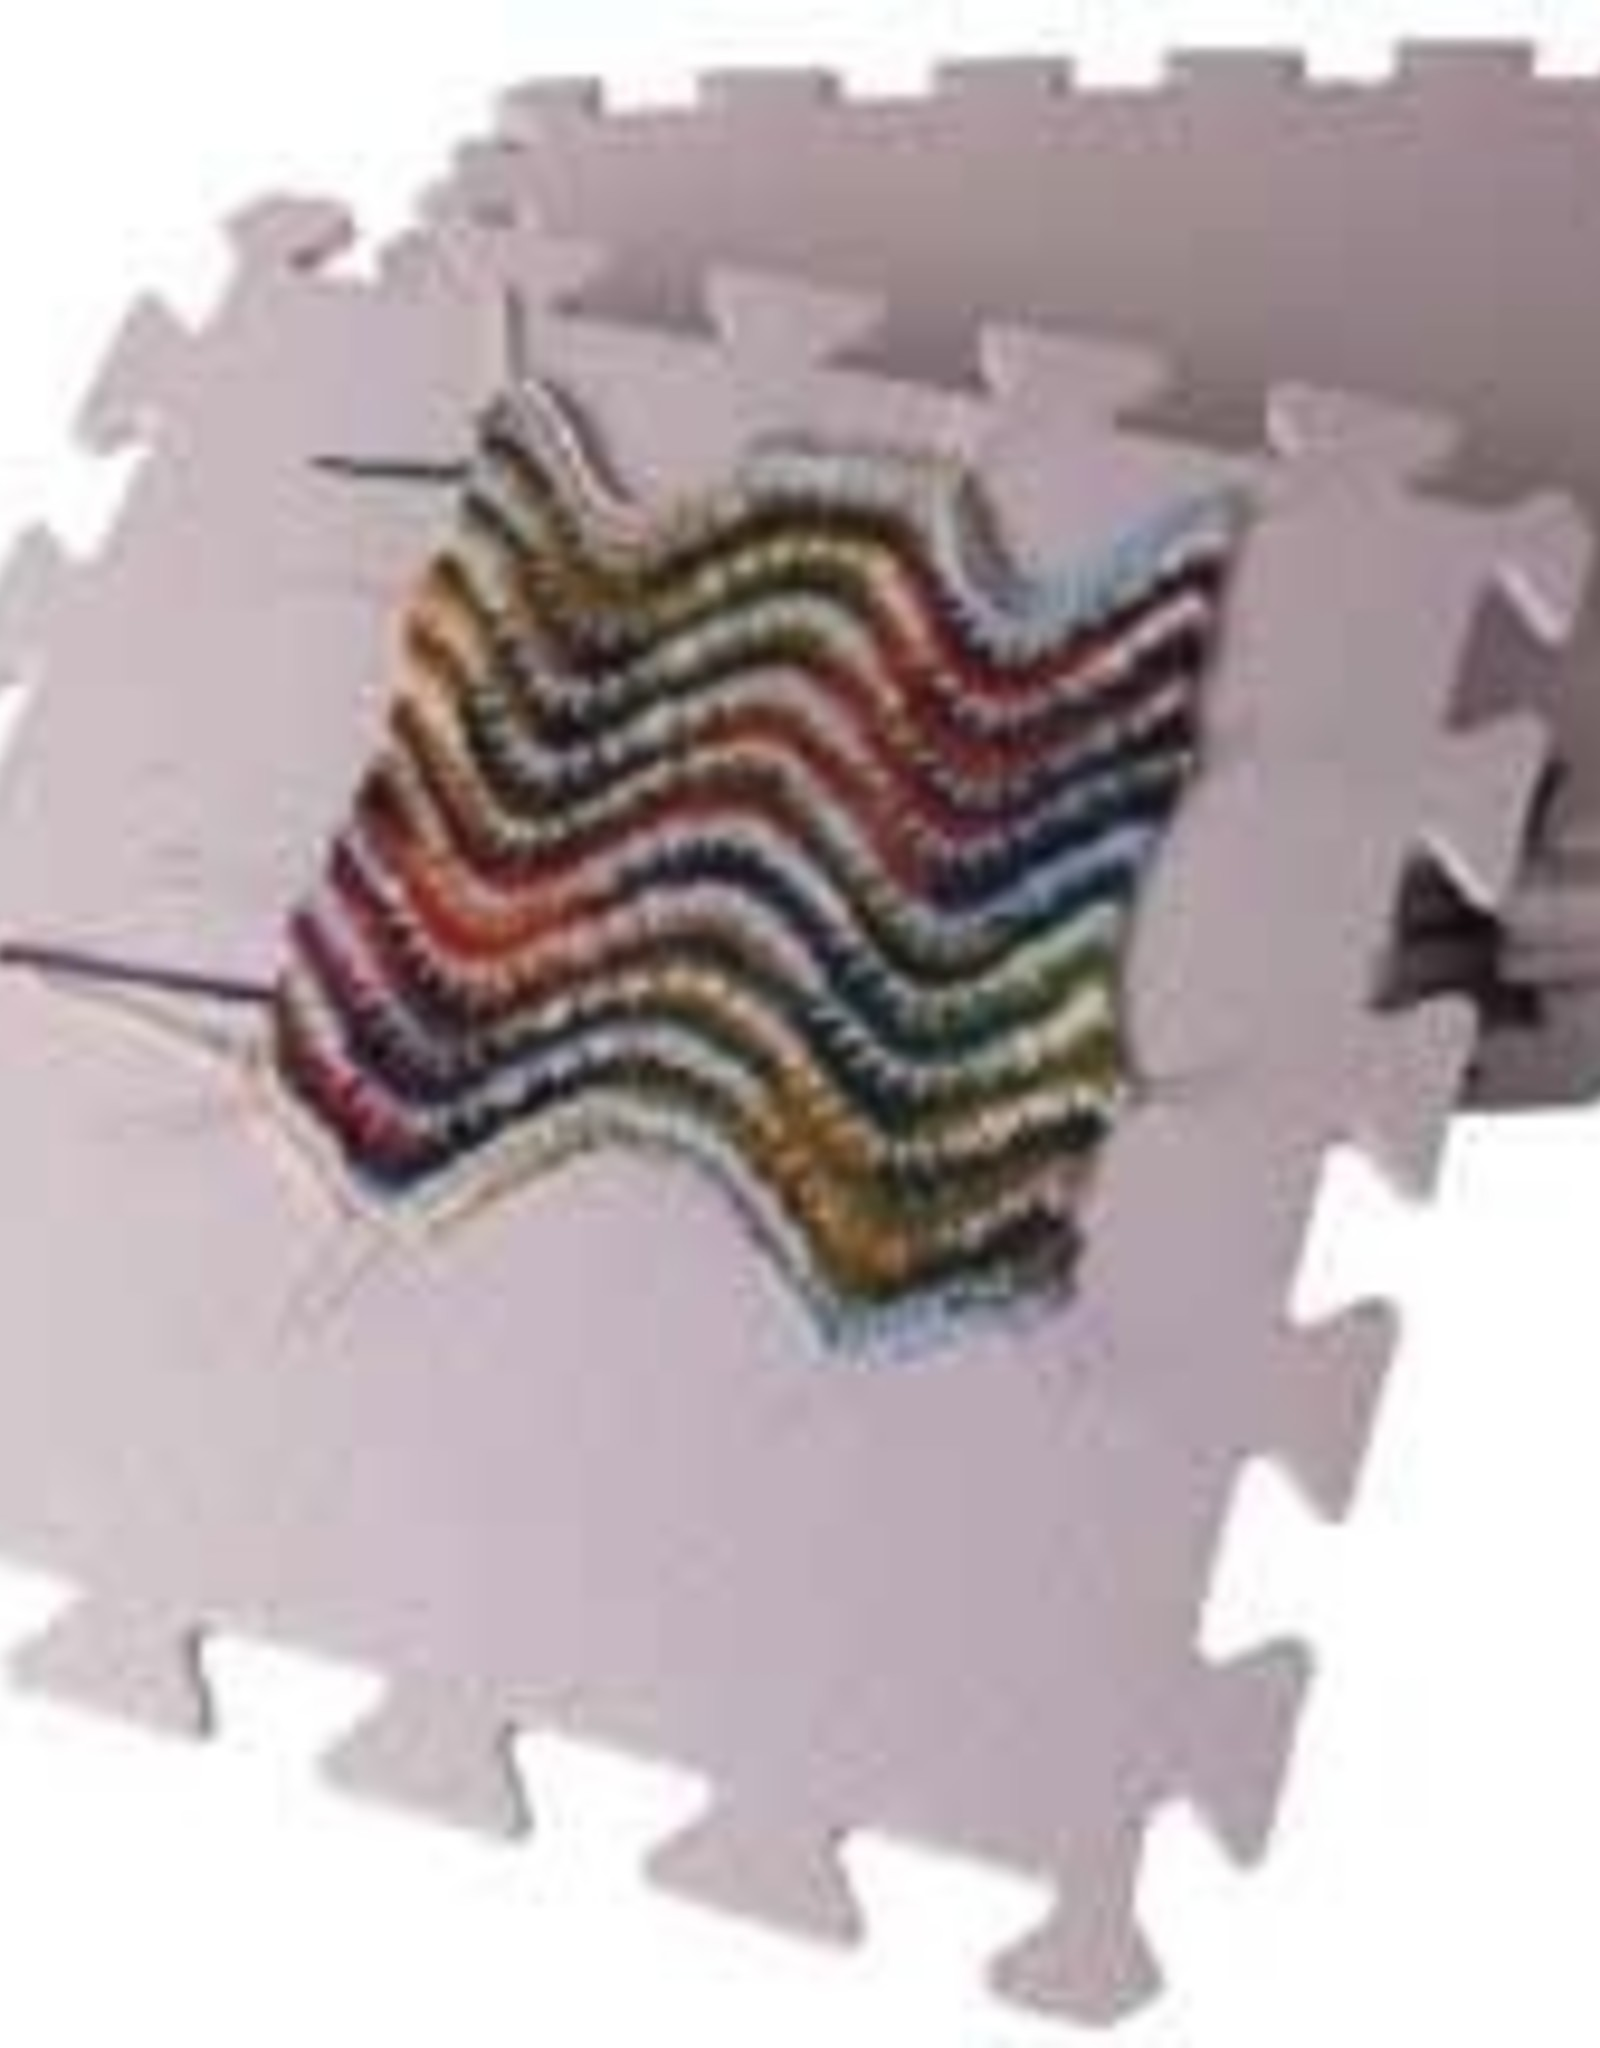 """Knitpicks Knitting Blocking Mats<br />One side is smooth, one side is has texture. Contains nine 12"""" grey squares, 3/8"""" thick"""